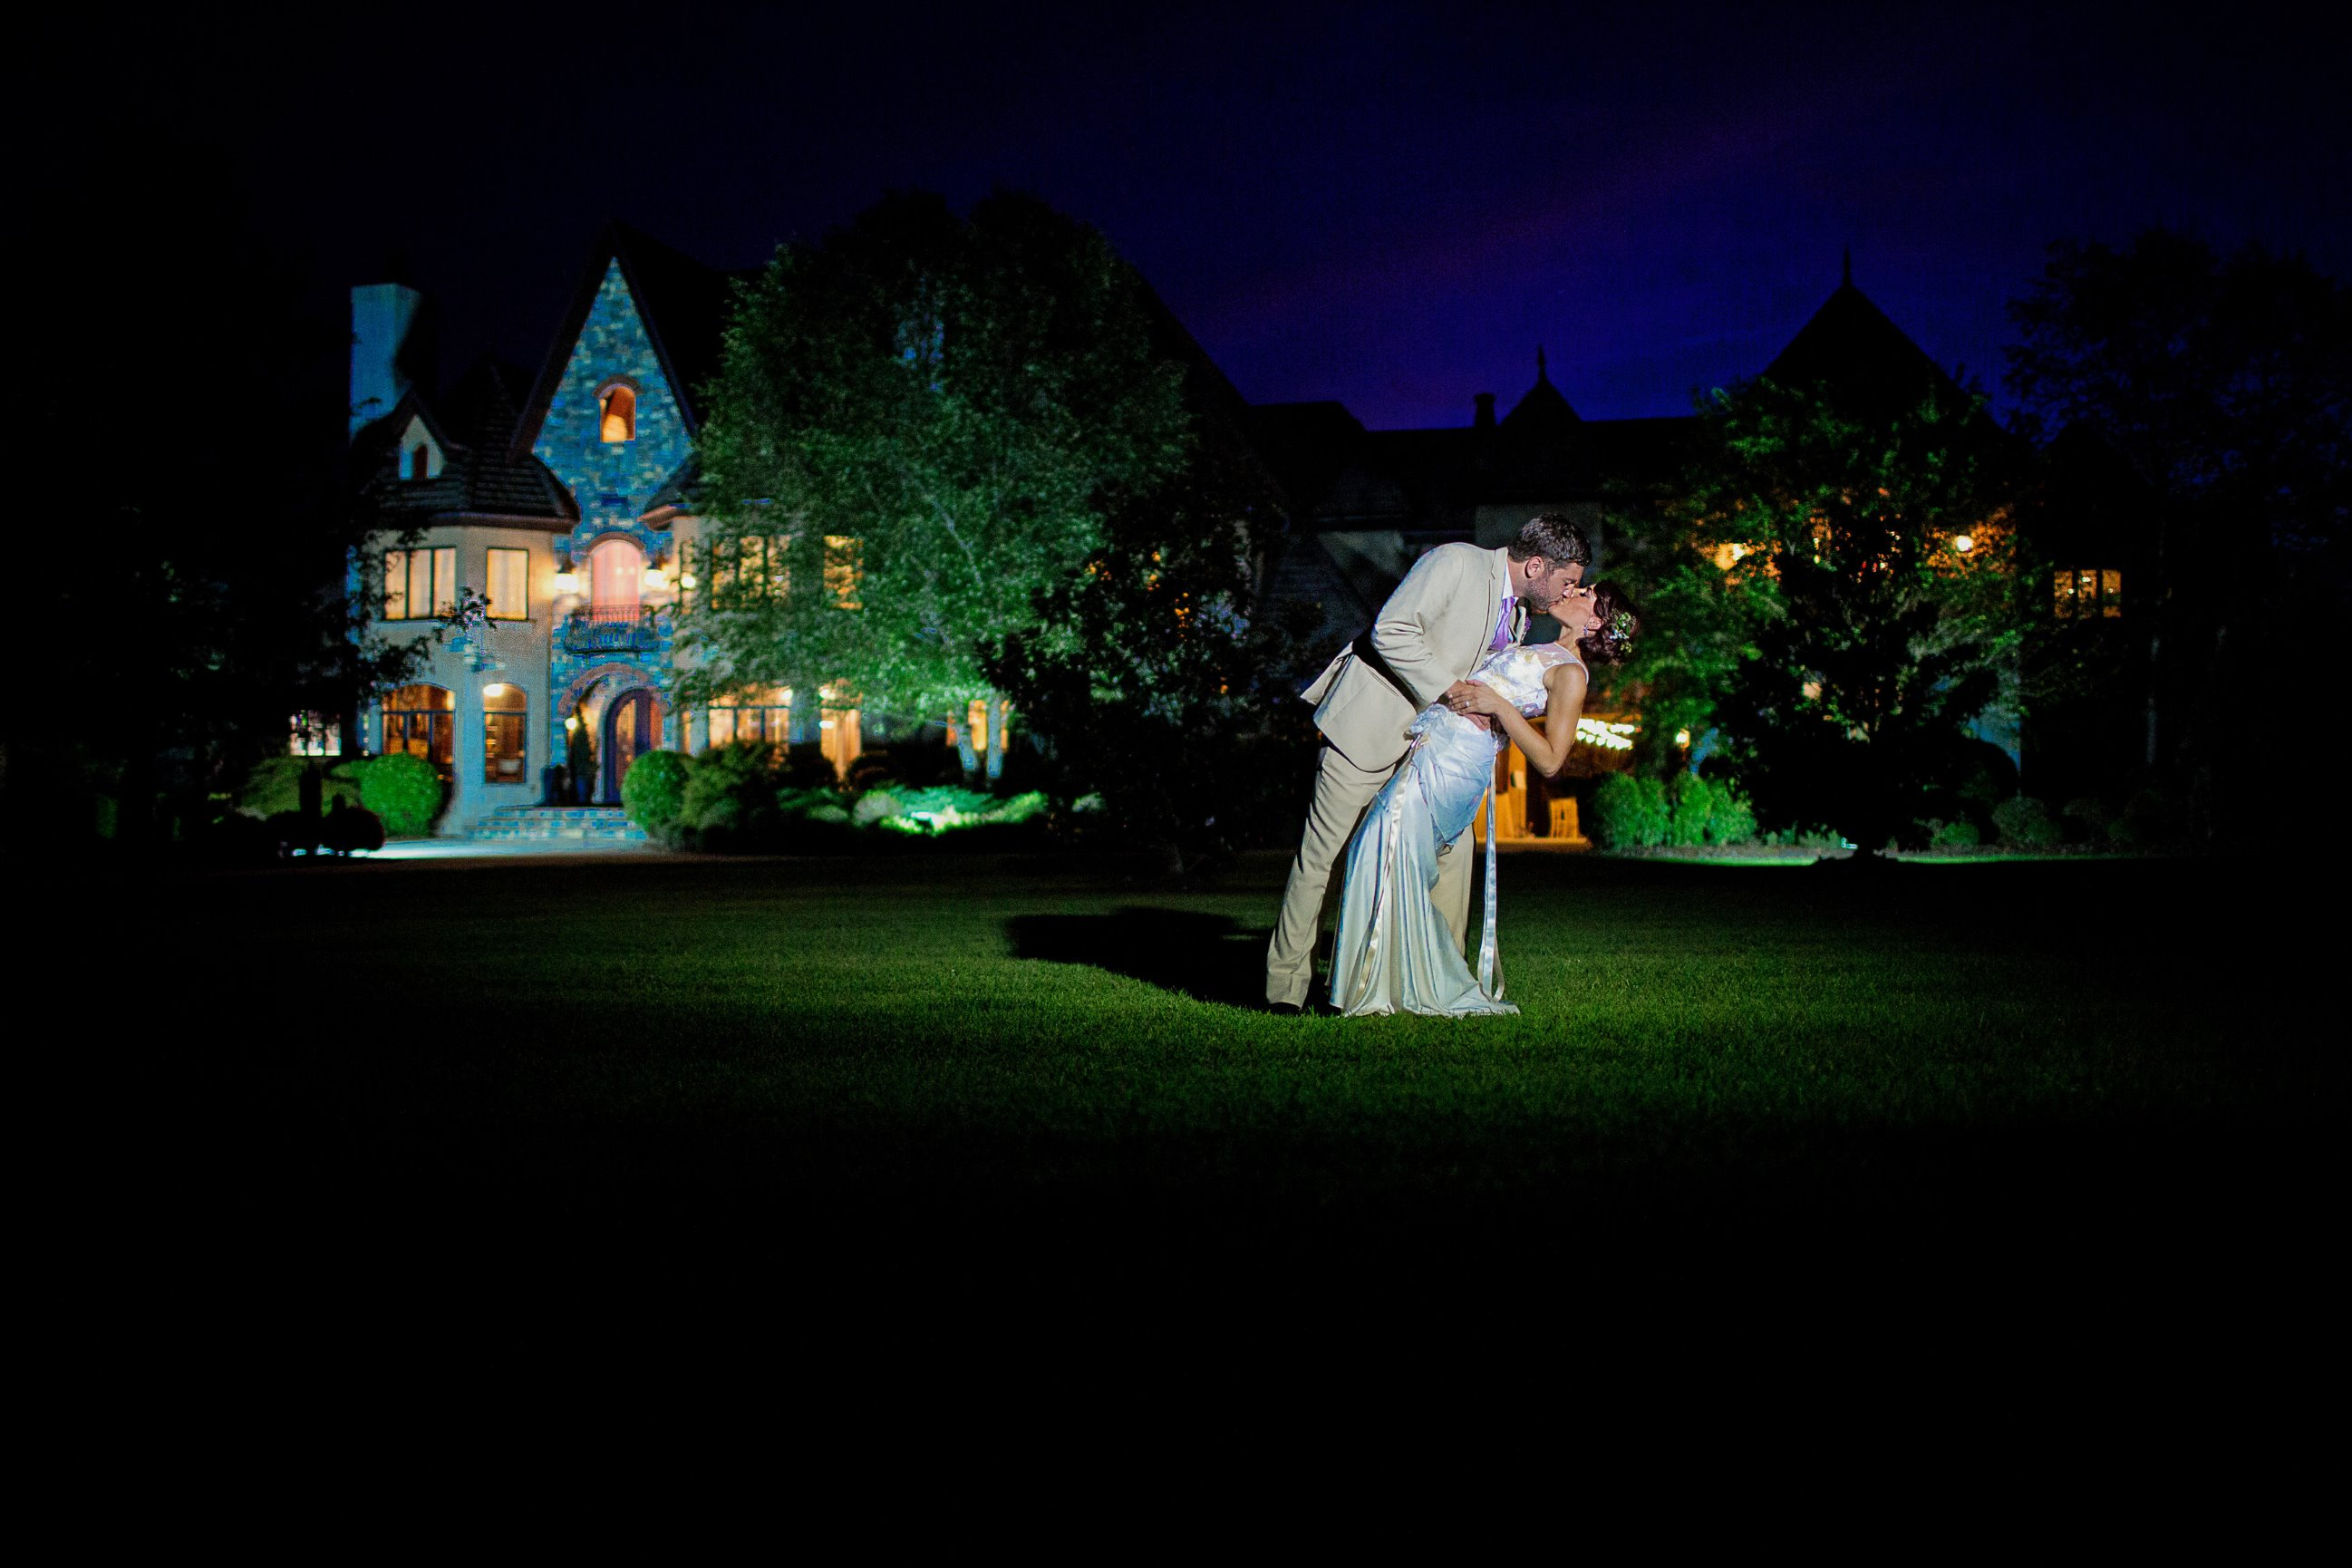 Married Couple Manor at Night